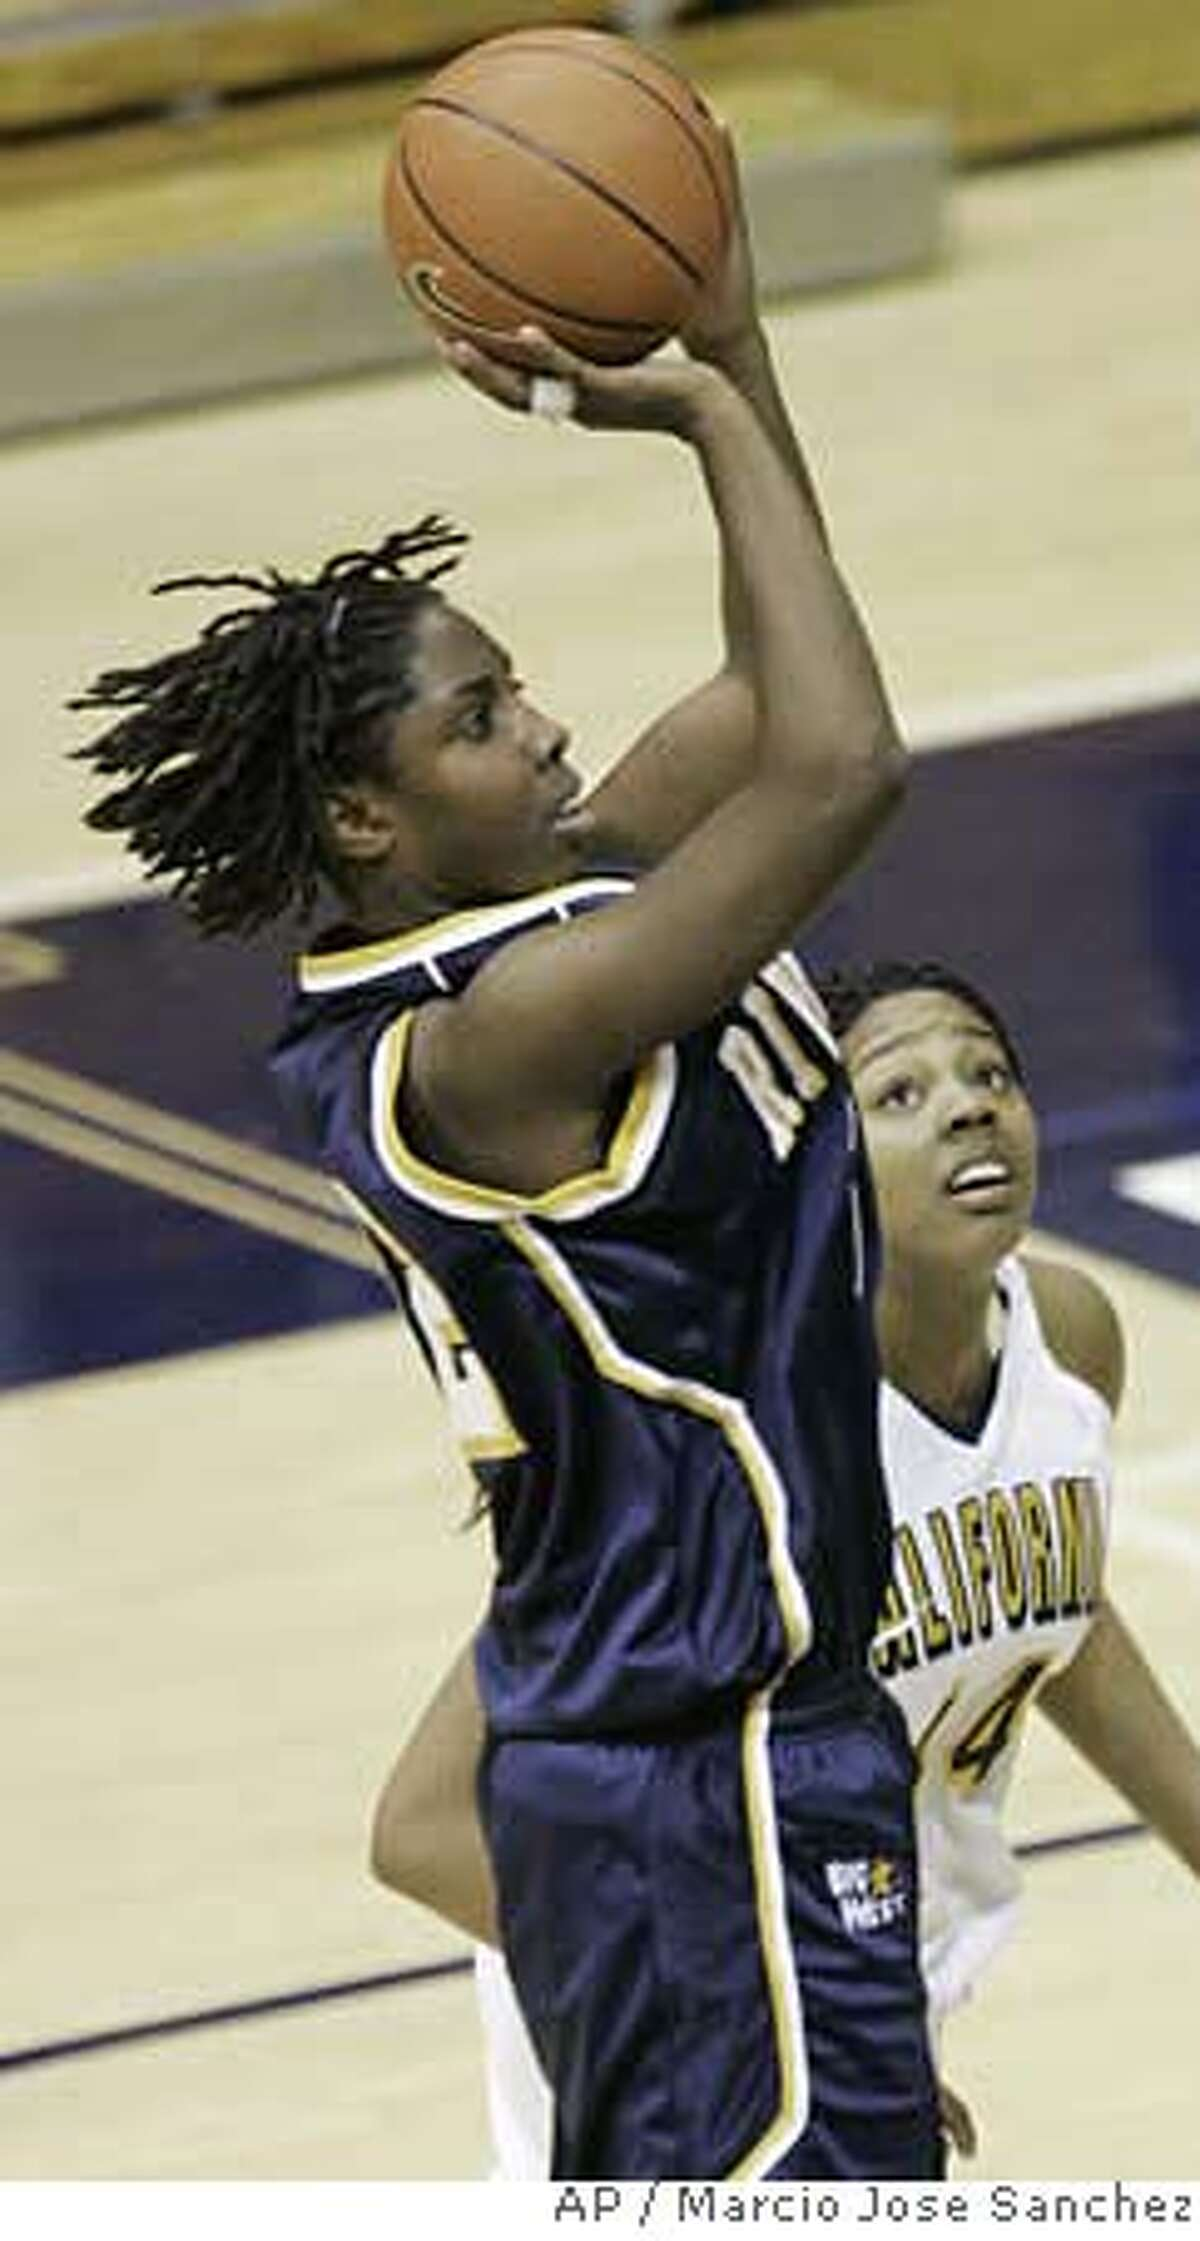 UC Riverside's Amber Cox, top, scores over California's Ashley Walker in the second half of a basketball game in Berkeley, Calif., Wednesday, Jan. 31, 2007. California won 58-51. (AP Photo/Marcio Jose Sanchez)